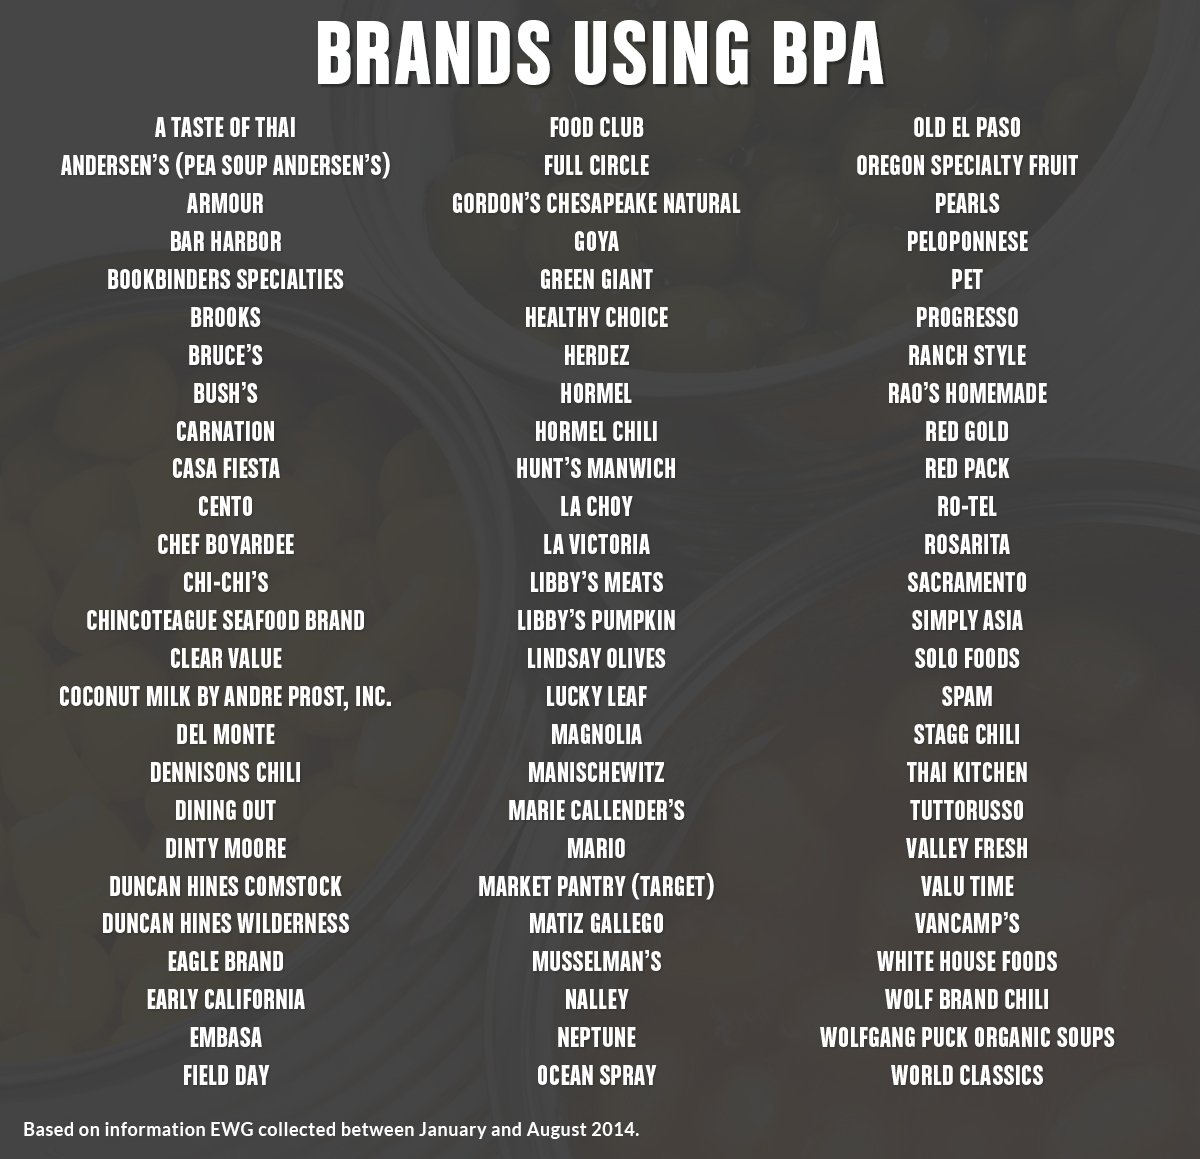 Brands using BPA